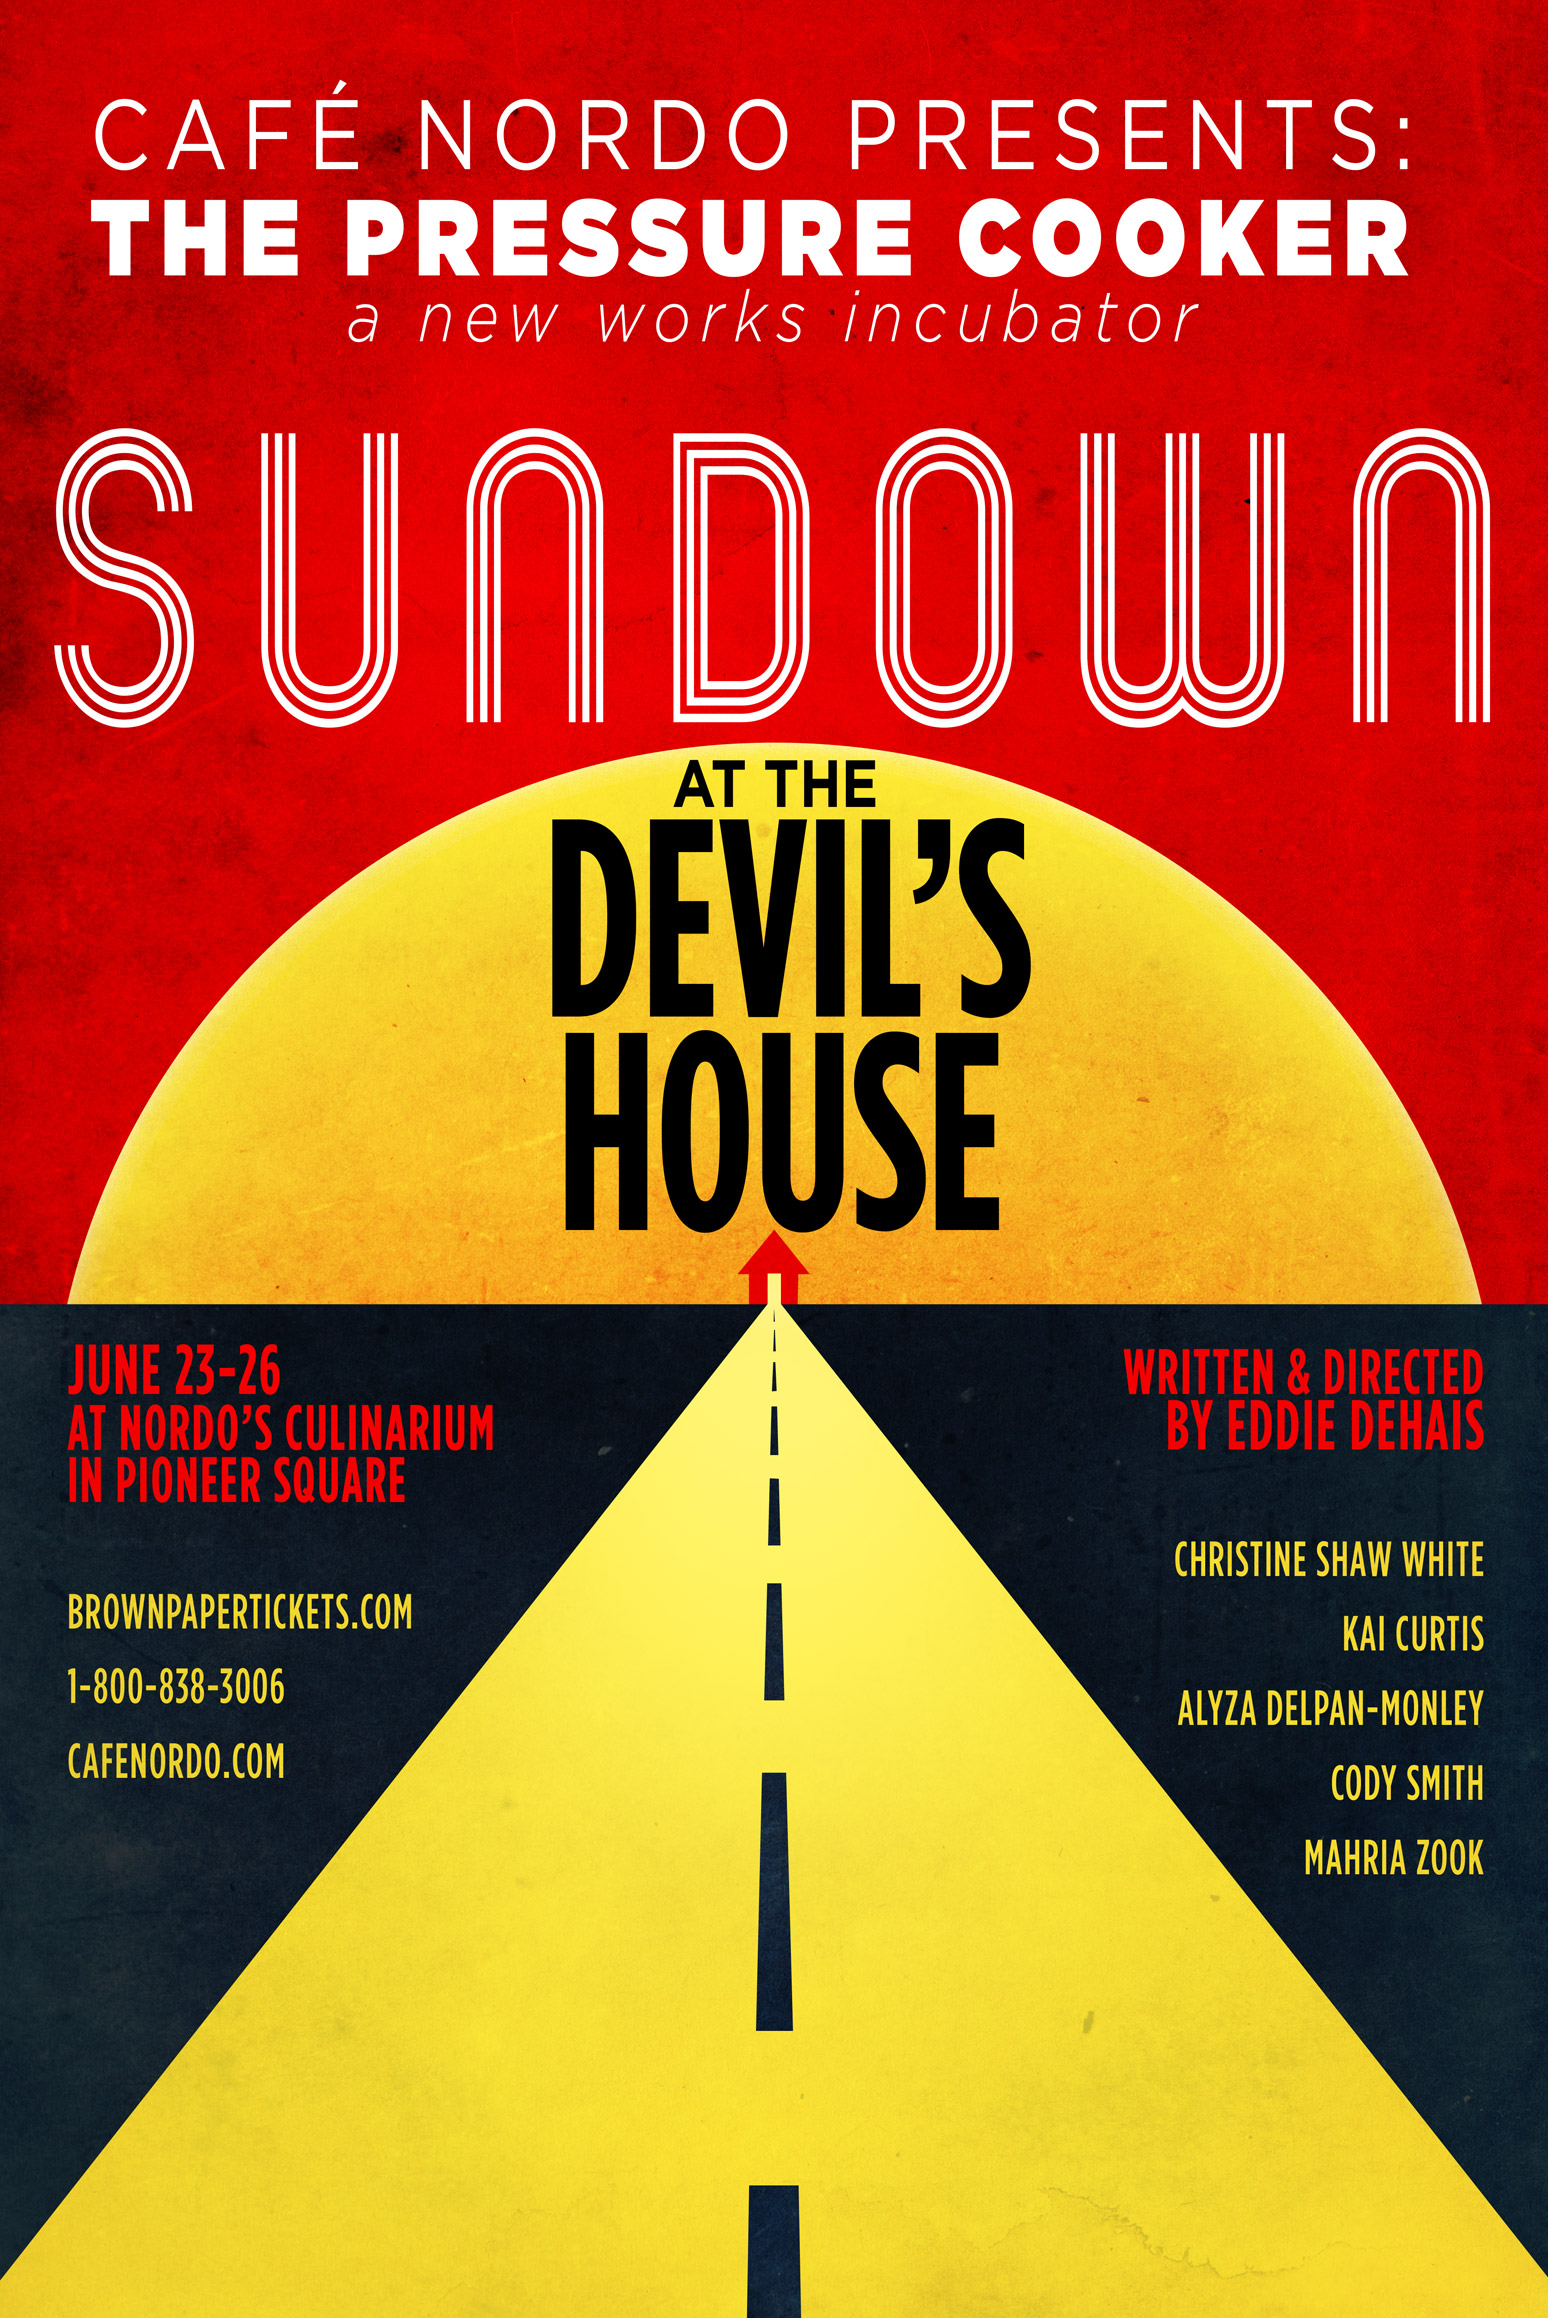 Sundown at the Devil's House (2016) | It's the Devil's last night on Earth, and she and her cohorts will titillate, beguile, and entertain the audience with stories of the Devil's greatest triumphs and darkest secrets. Sundown is a capricious and fantastical pieces of anarchic theatre, live music, and strange goings-on that sinuously interlaces into a story about the Devil's love for music and mankind. Written and Directed by Eddie DeHais.